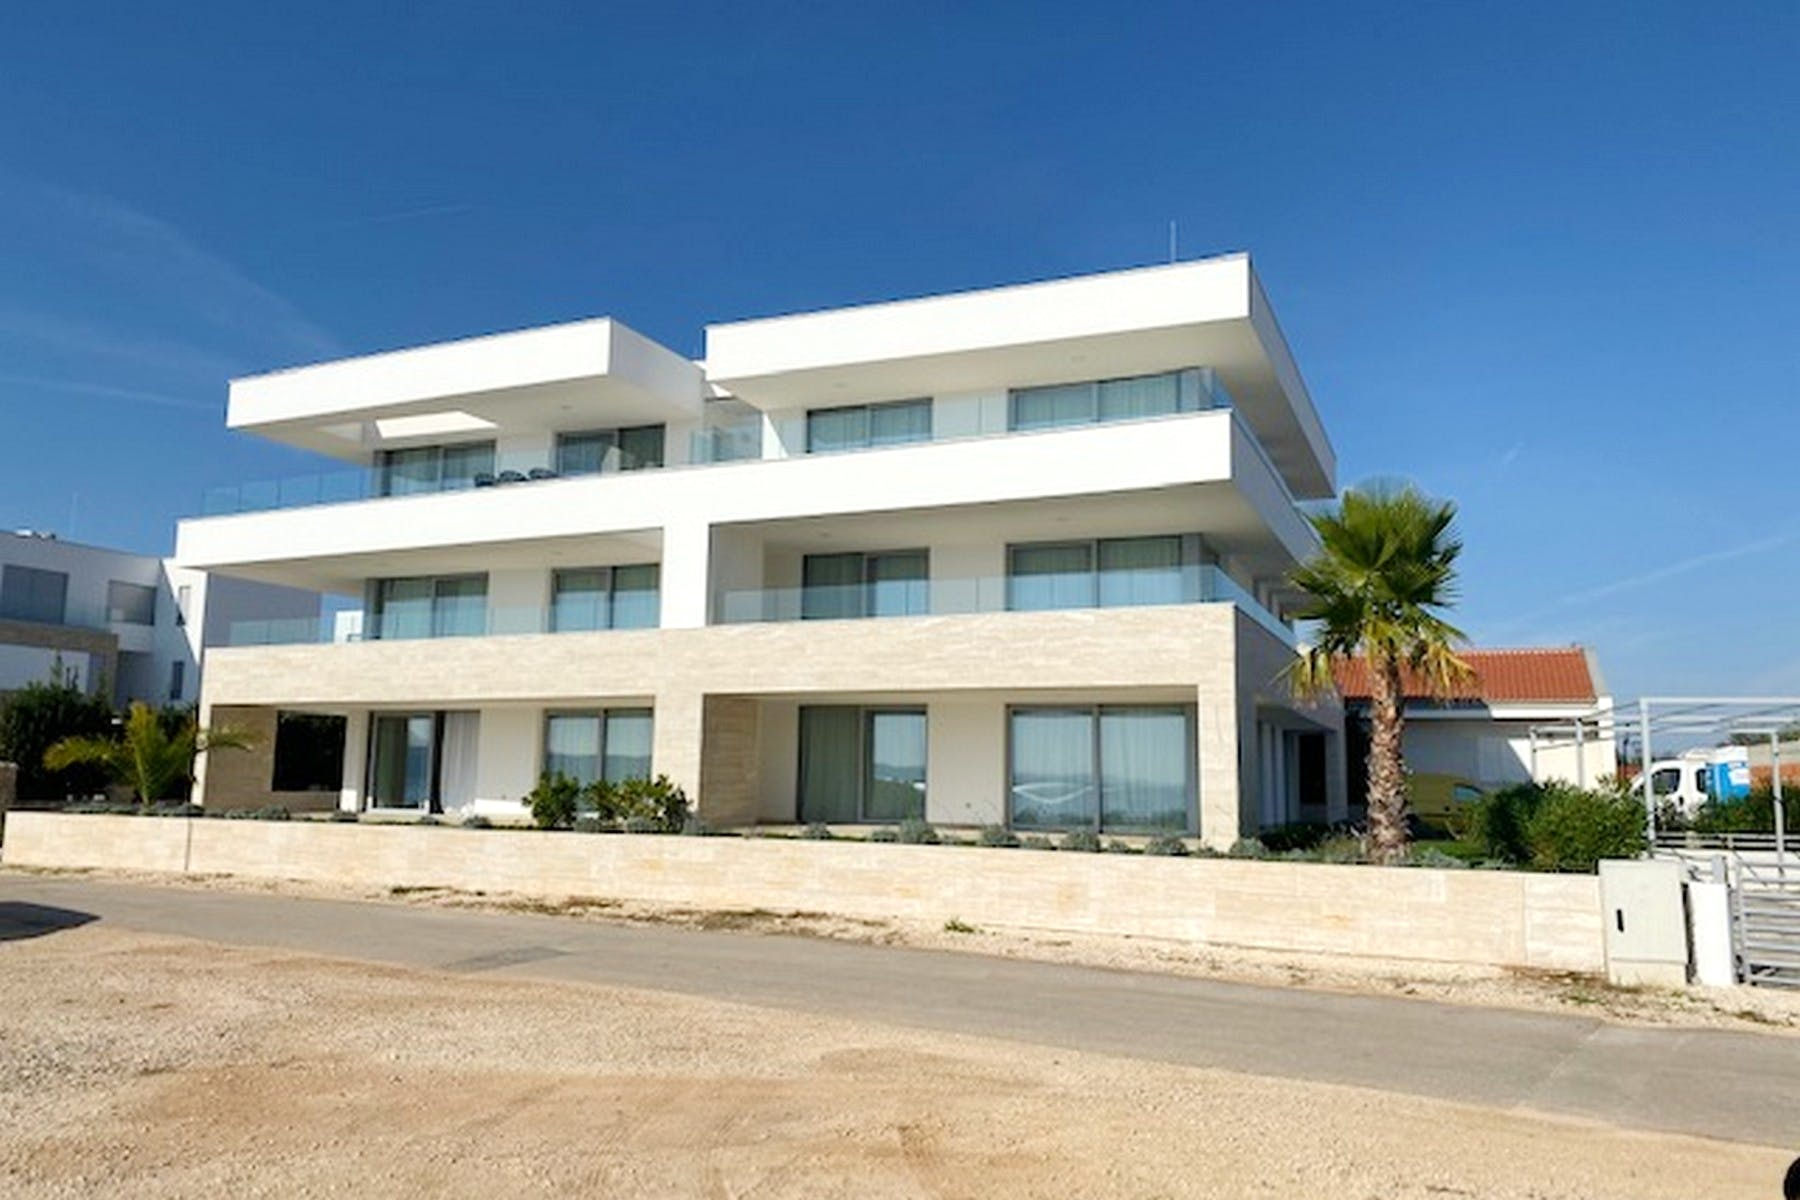 Contemporary style building with apartments for sale